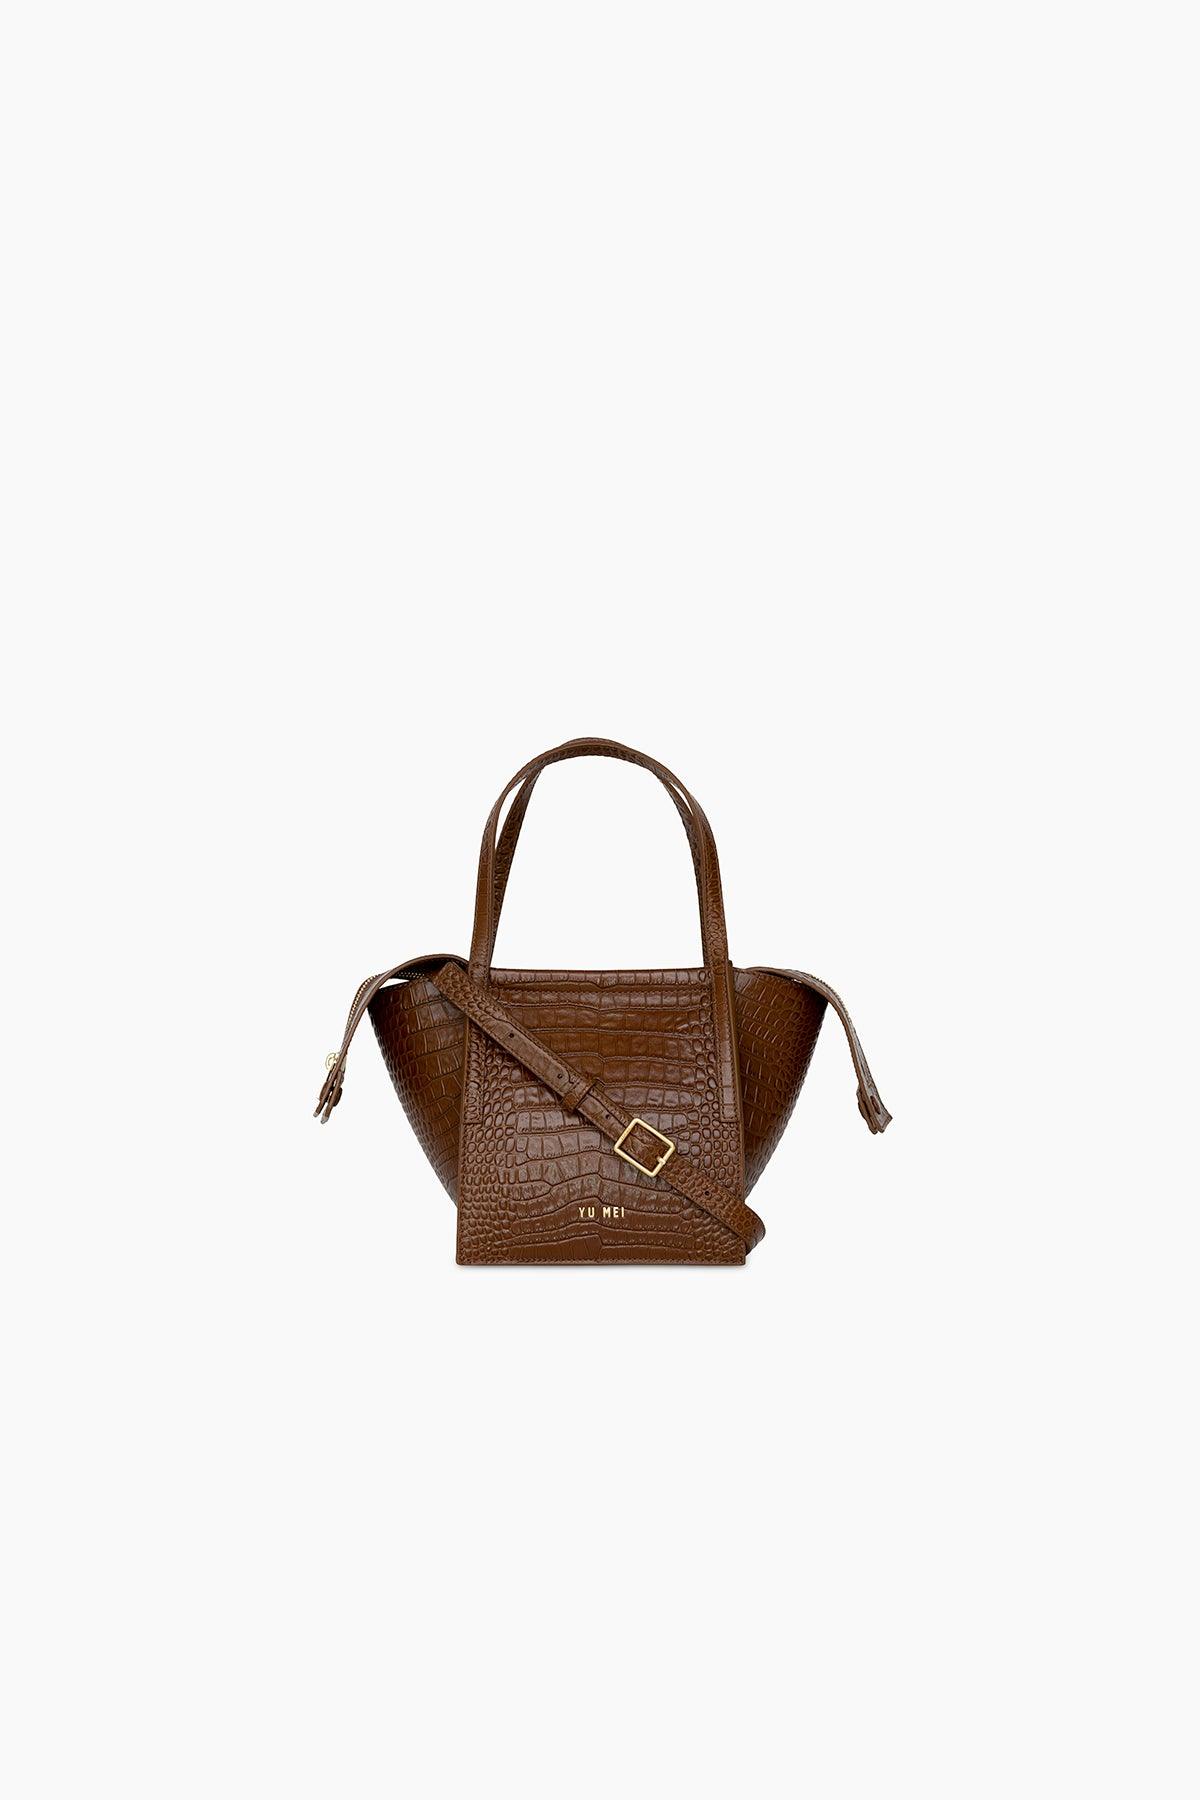 Milly Bag | Cognac Croc